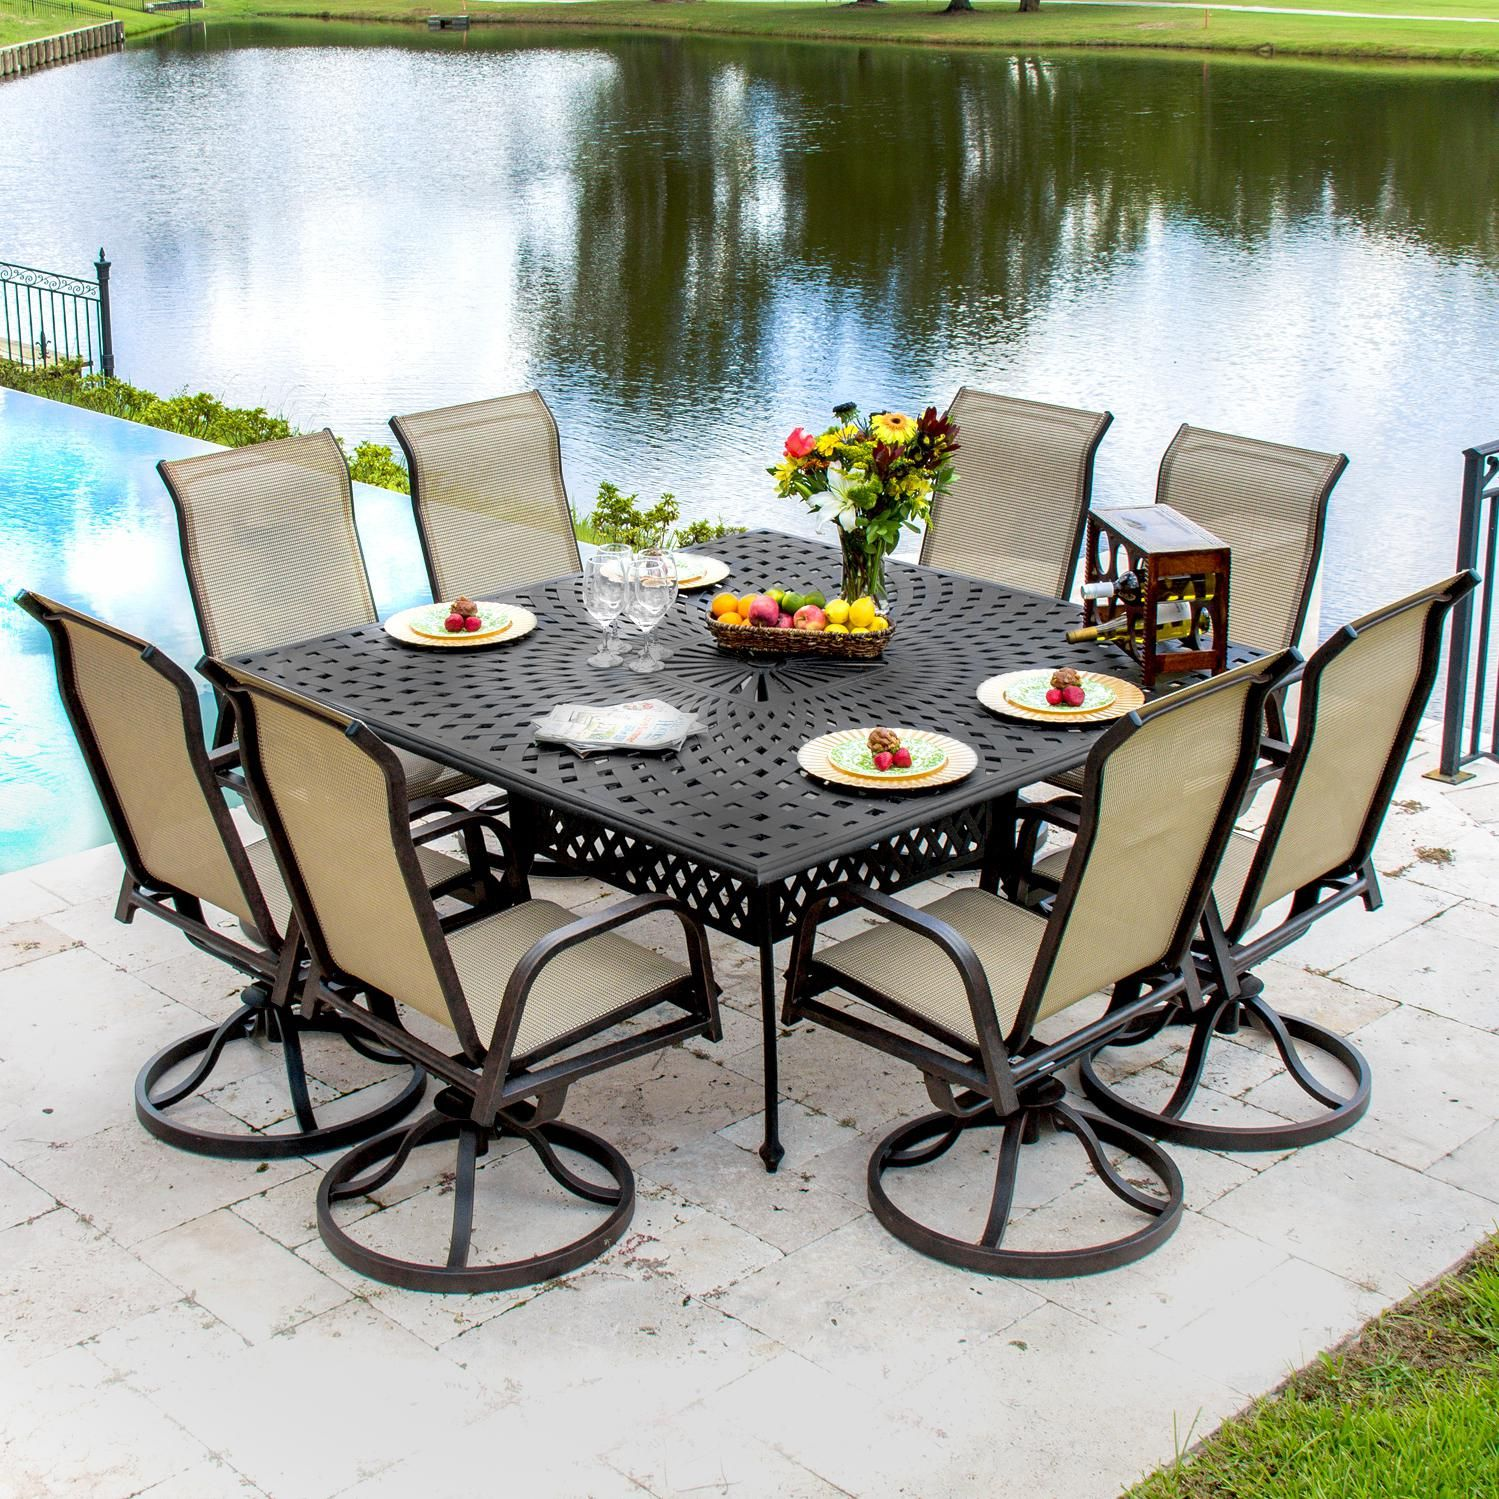 What A Beautiful Set Madison Bay 8 Person Sling Patio Dining With Cast Aluminum Table